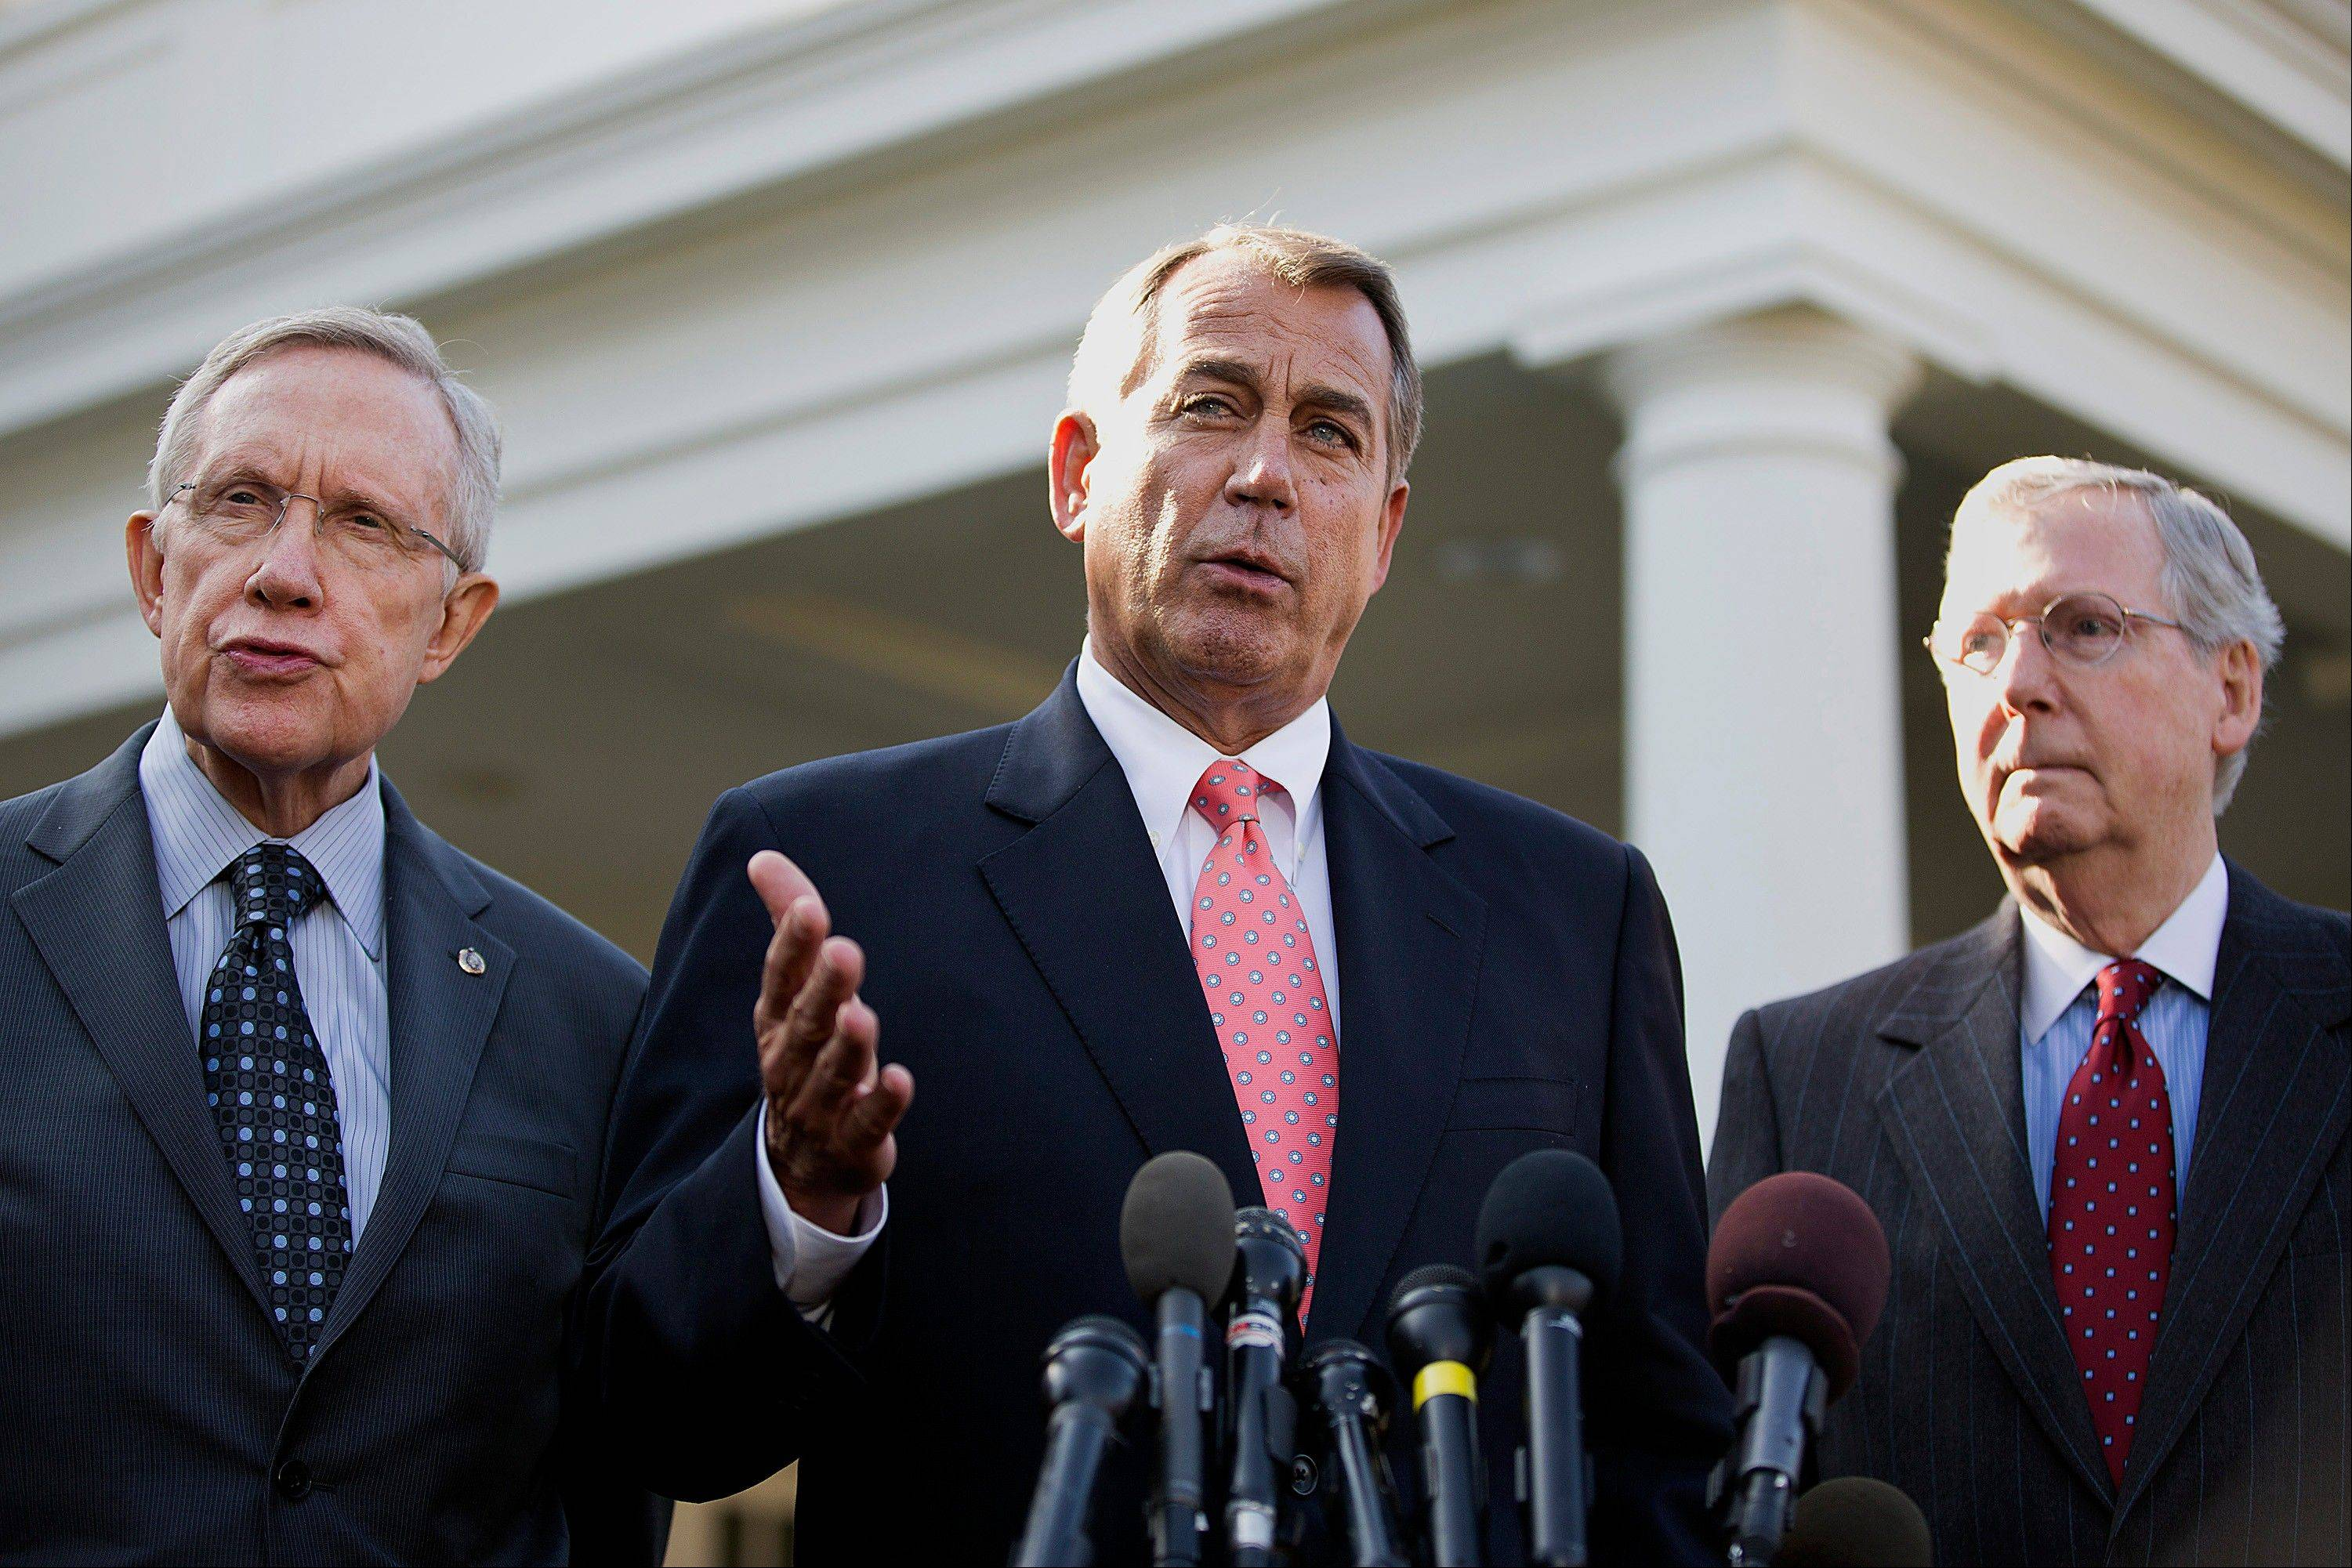 House Speaker John Boehner, a Republican from Ohio, center, speaks while Harry Reid, Democratic Senator from Nevada, left, and Mitch McConnell, Republican Senator from Kentucky, listen after meeting with U.S. President Barack Obama at the White House in Washington, D.C.